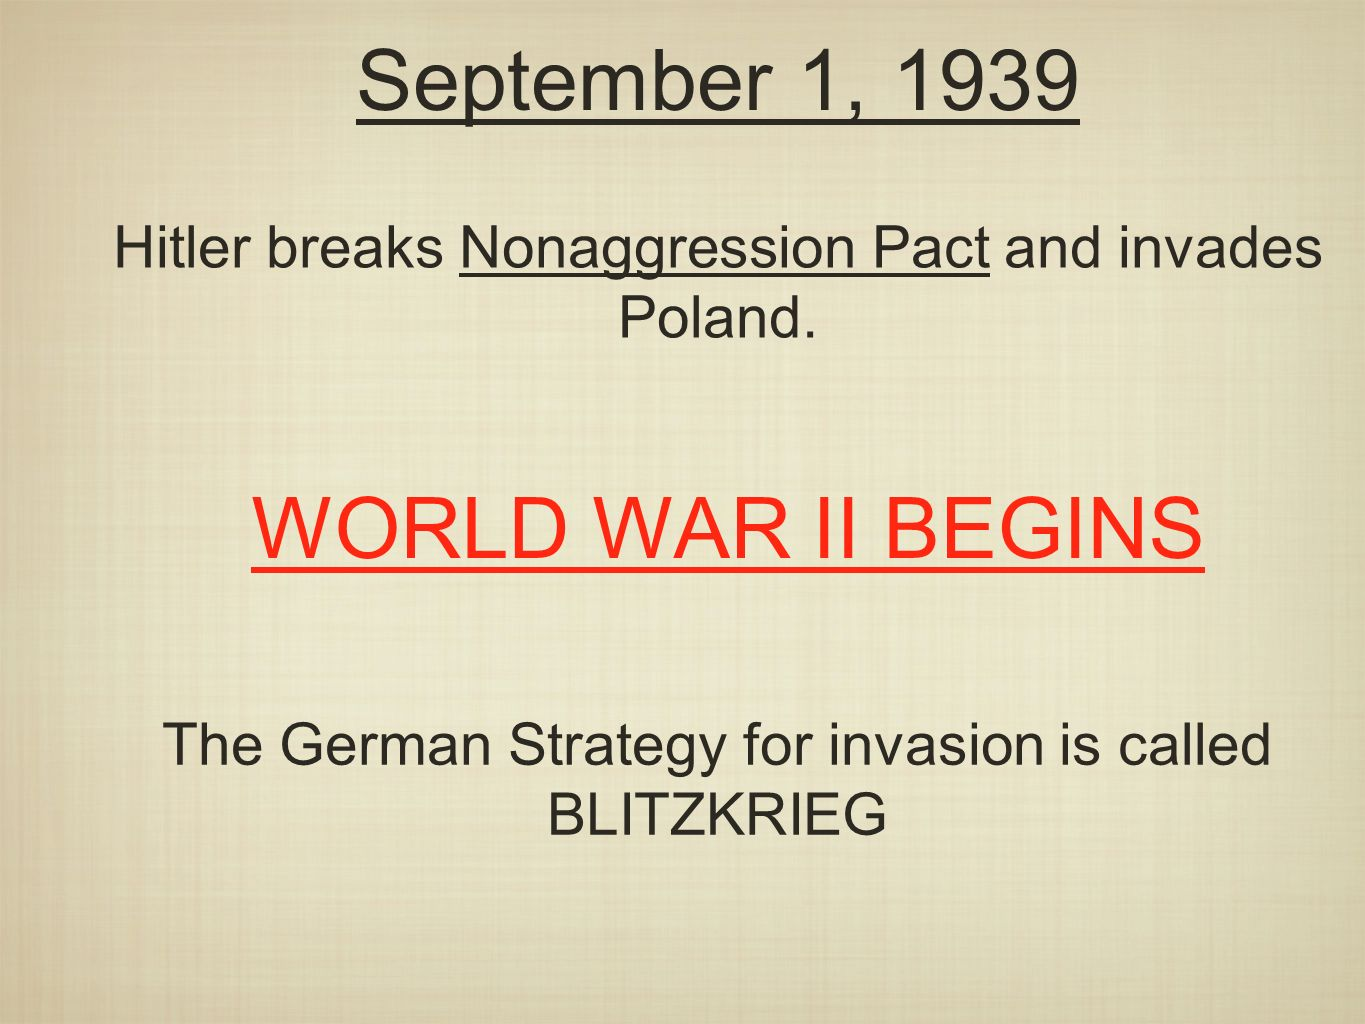 September 1, 1939 Hitler breaks Nonaggression Pact and invades Poland.